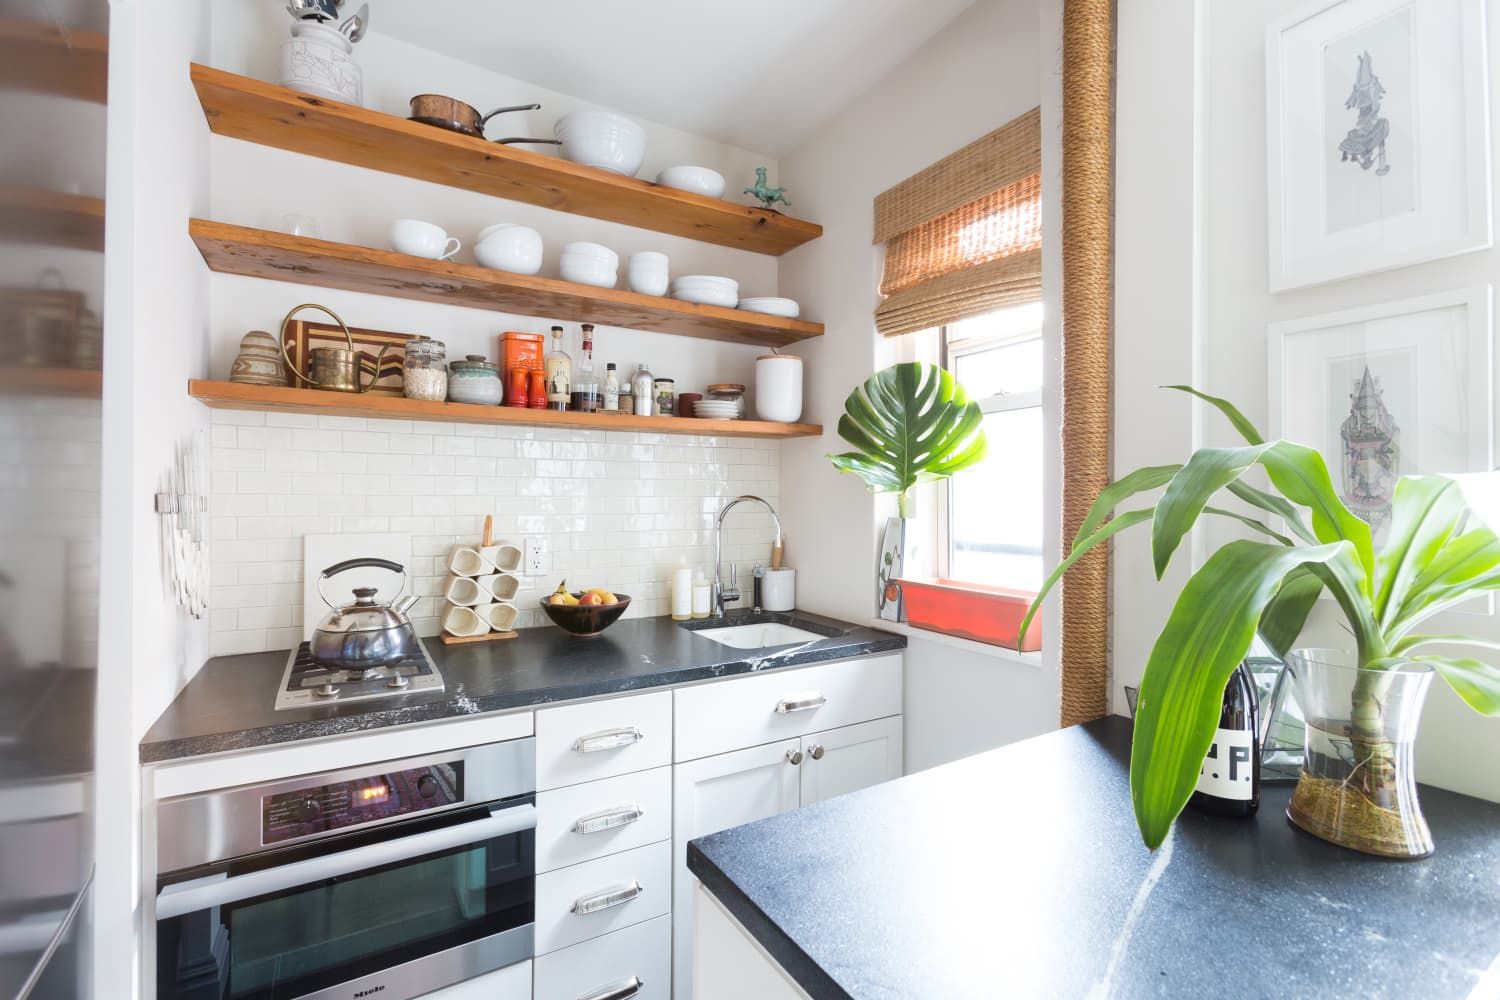 This Is the Best Tiny Kitchen We've Seen in Years